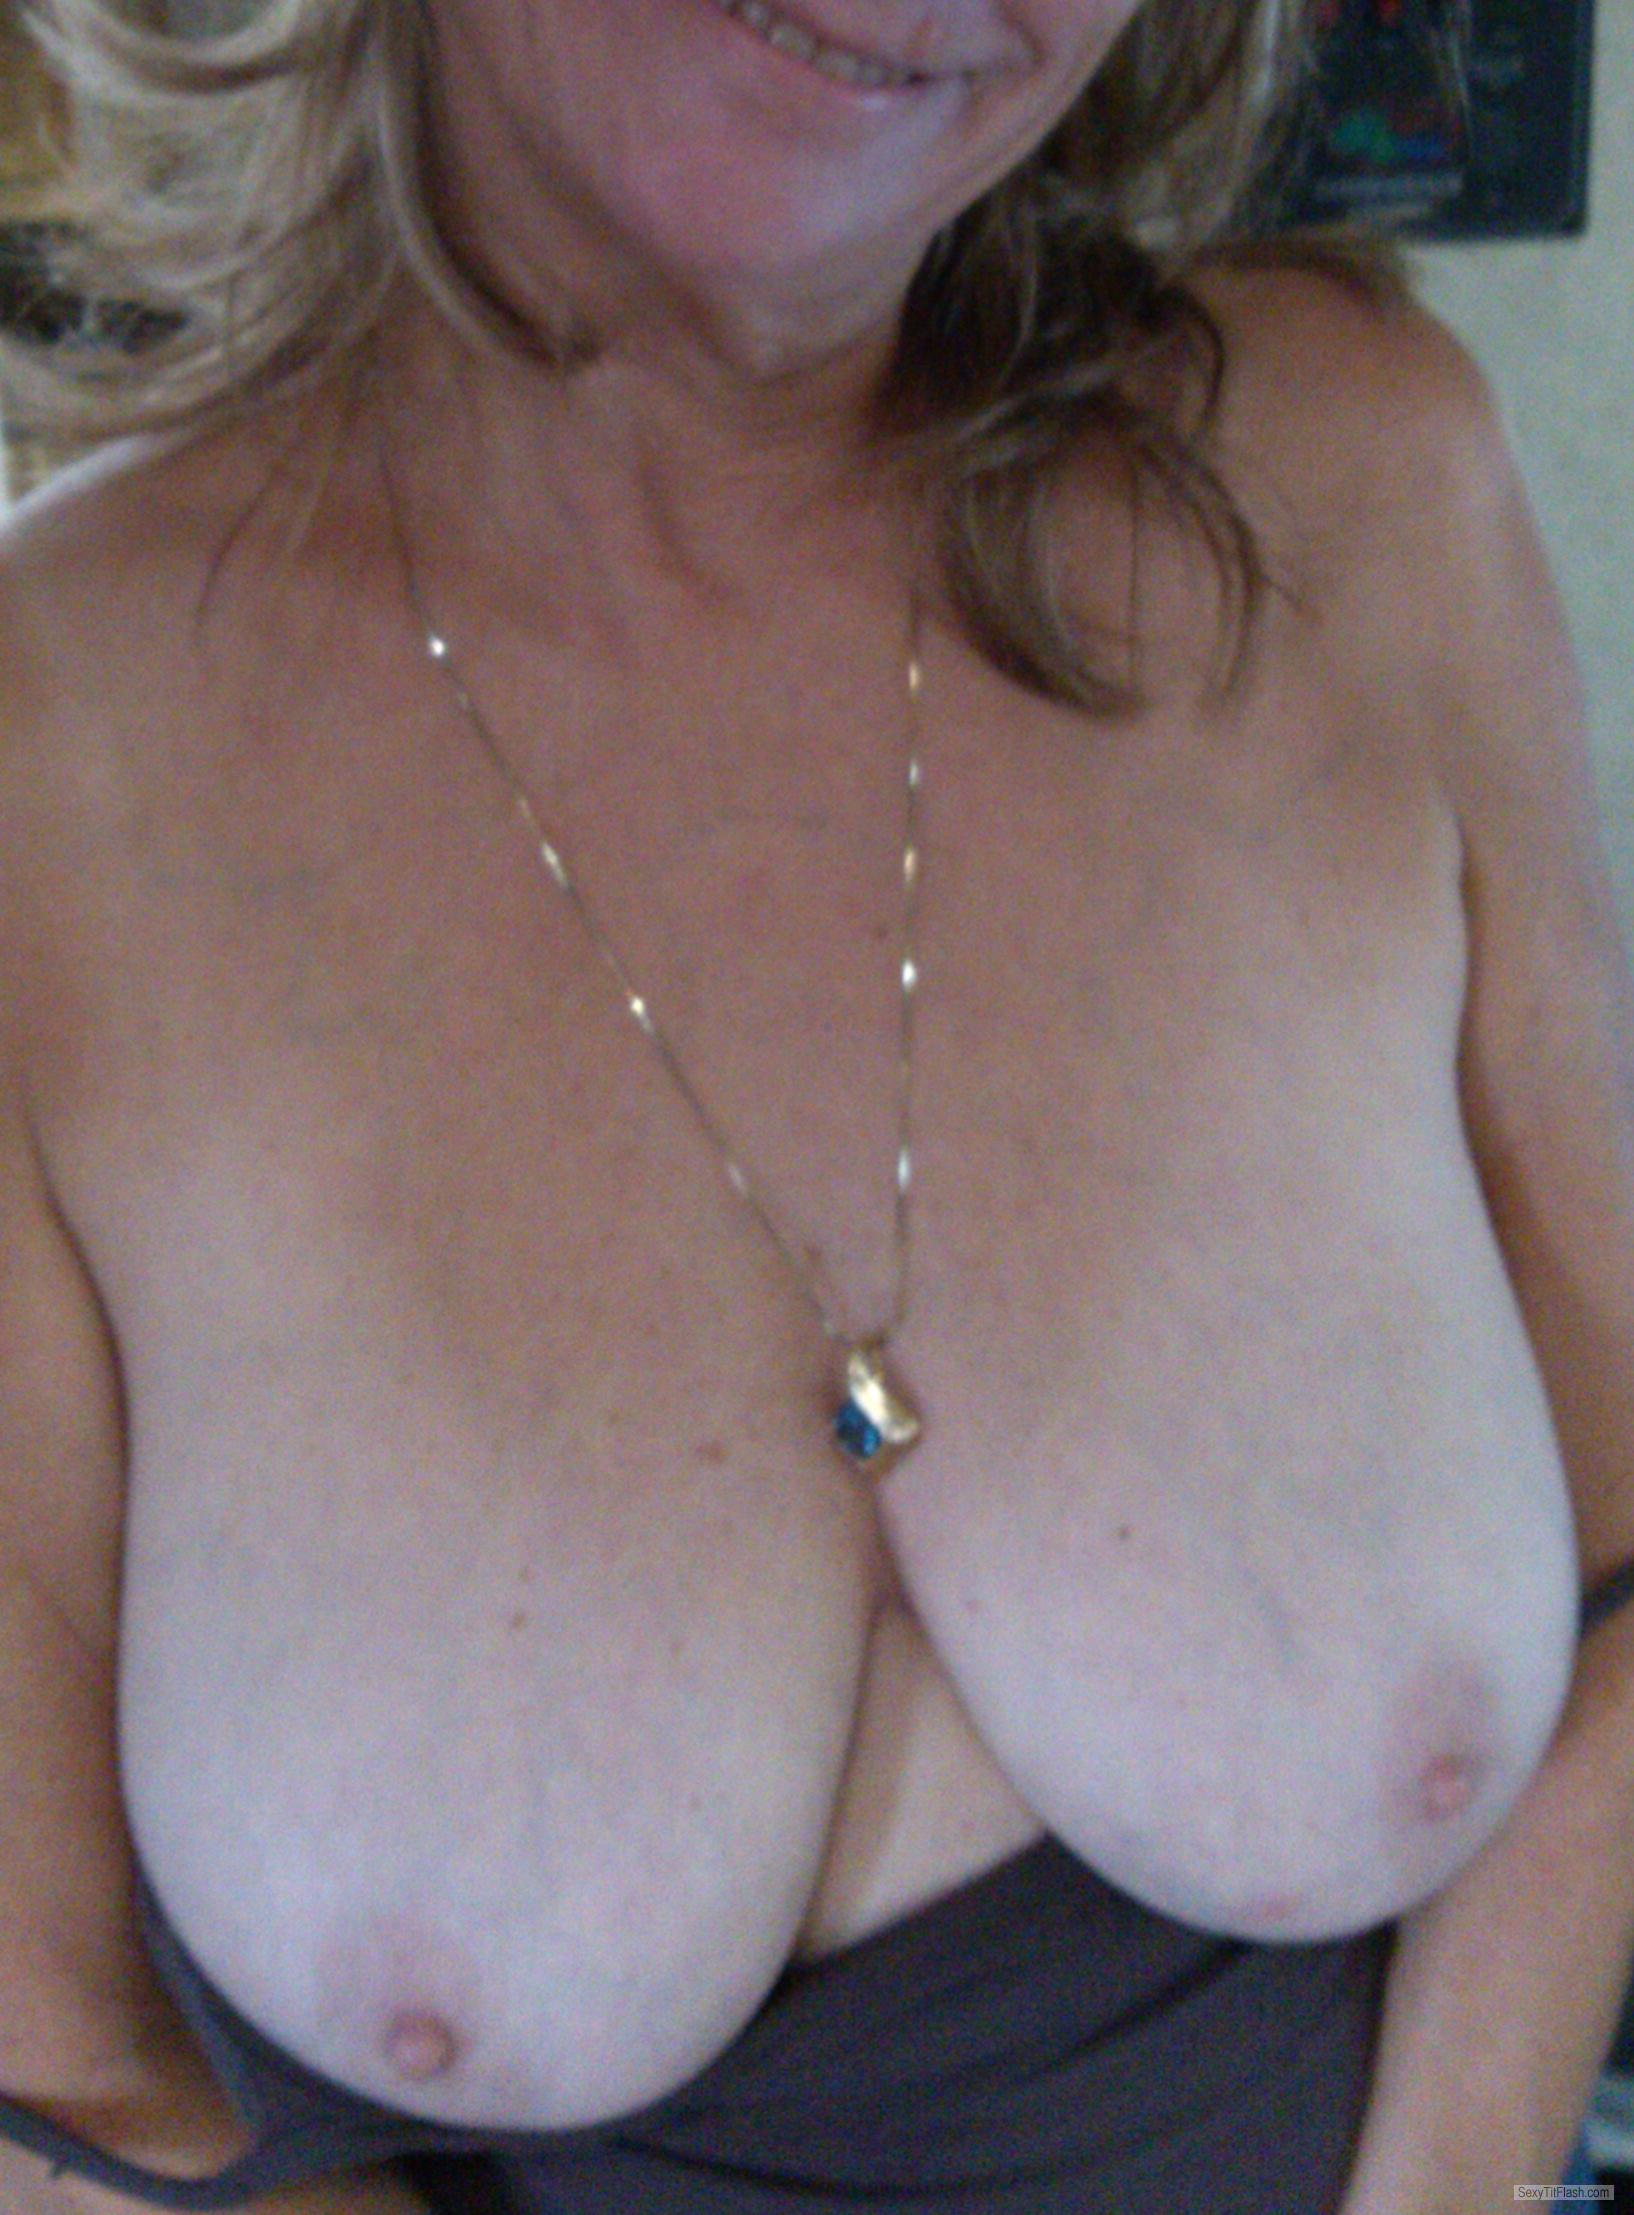 Tit Flash: Wife's Medium Tits - Molly Set from United States